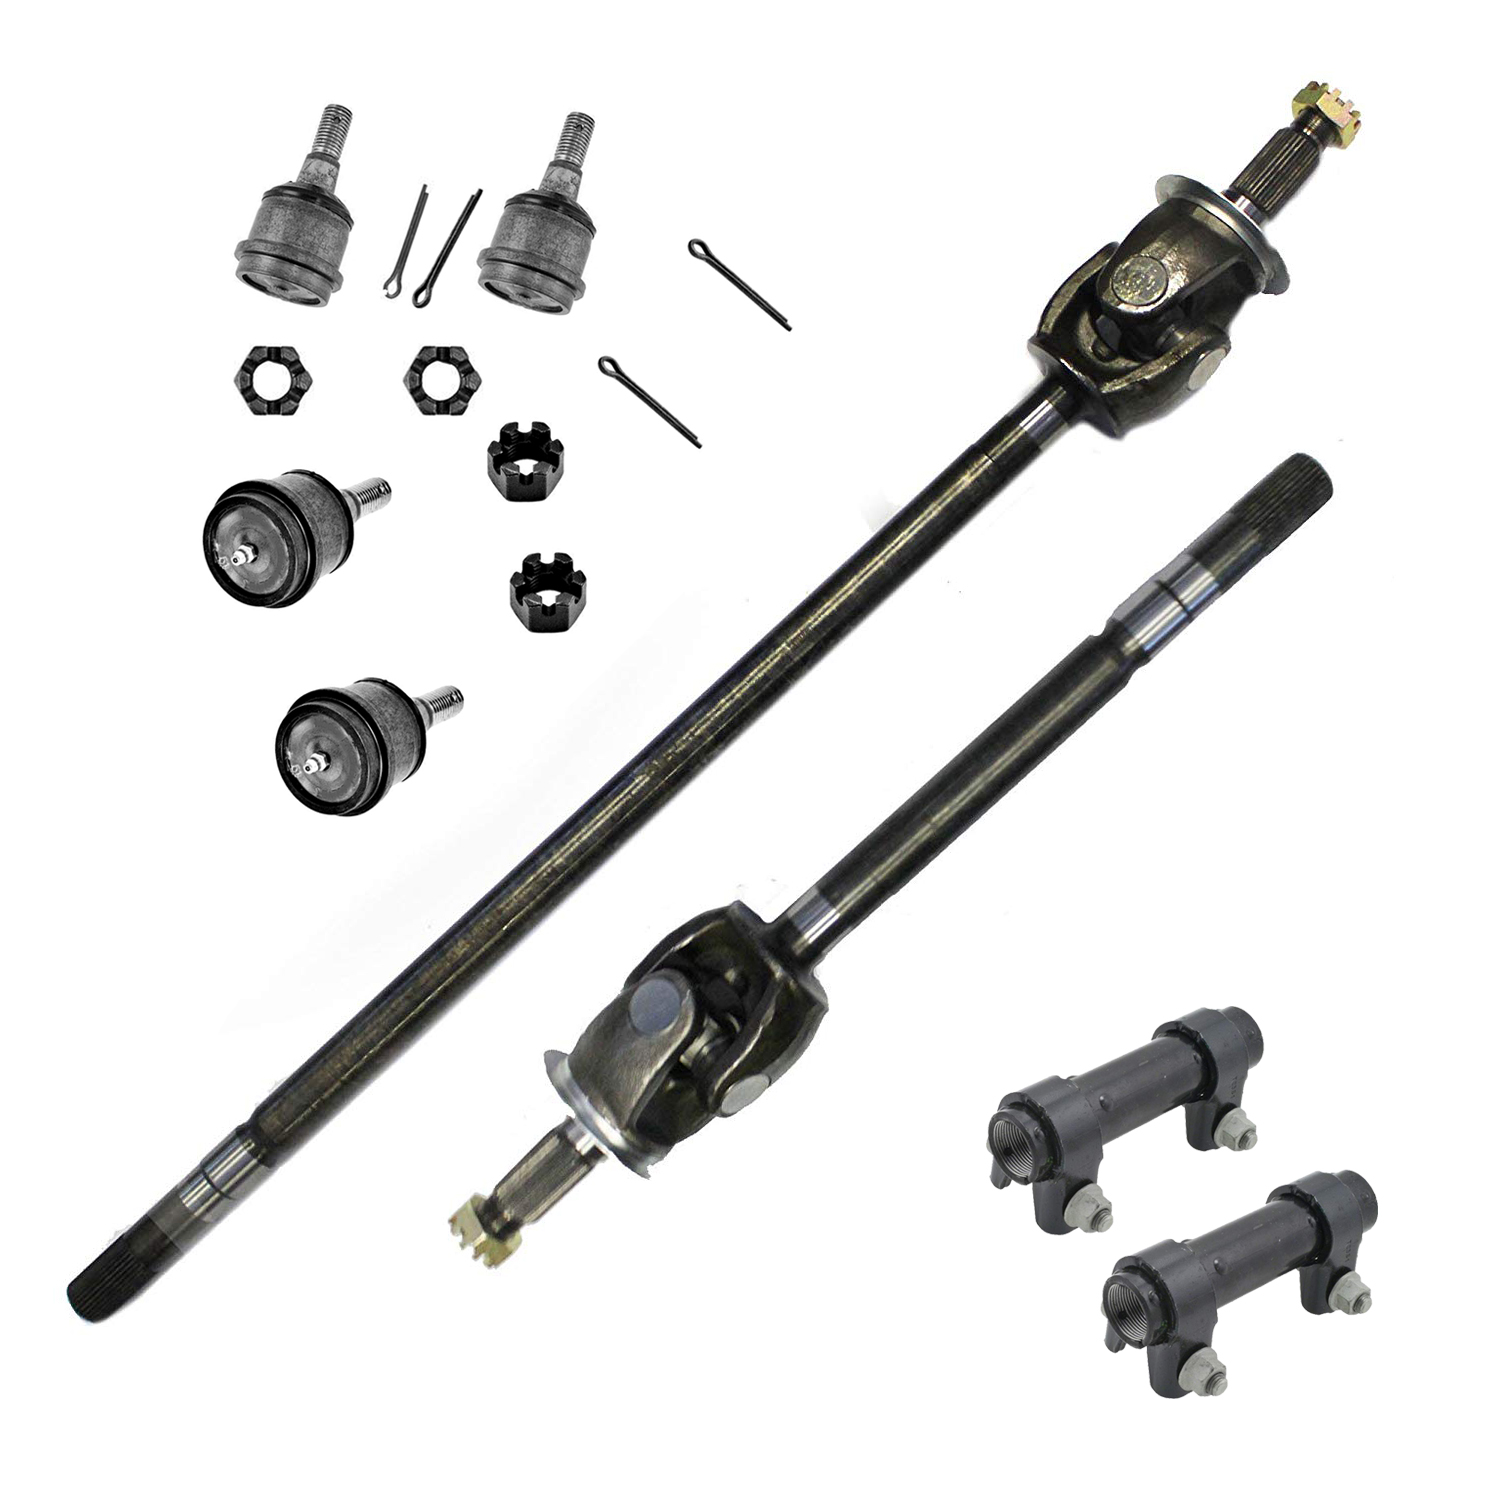 8PC Front CV Axle Shafts + Suspension Kit 4WD 1st Design w/Solid Front Axle